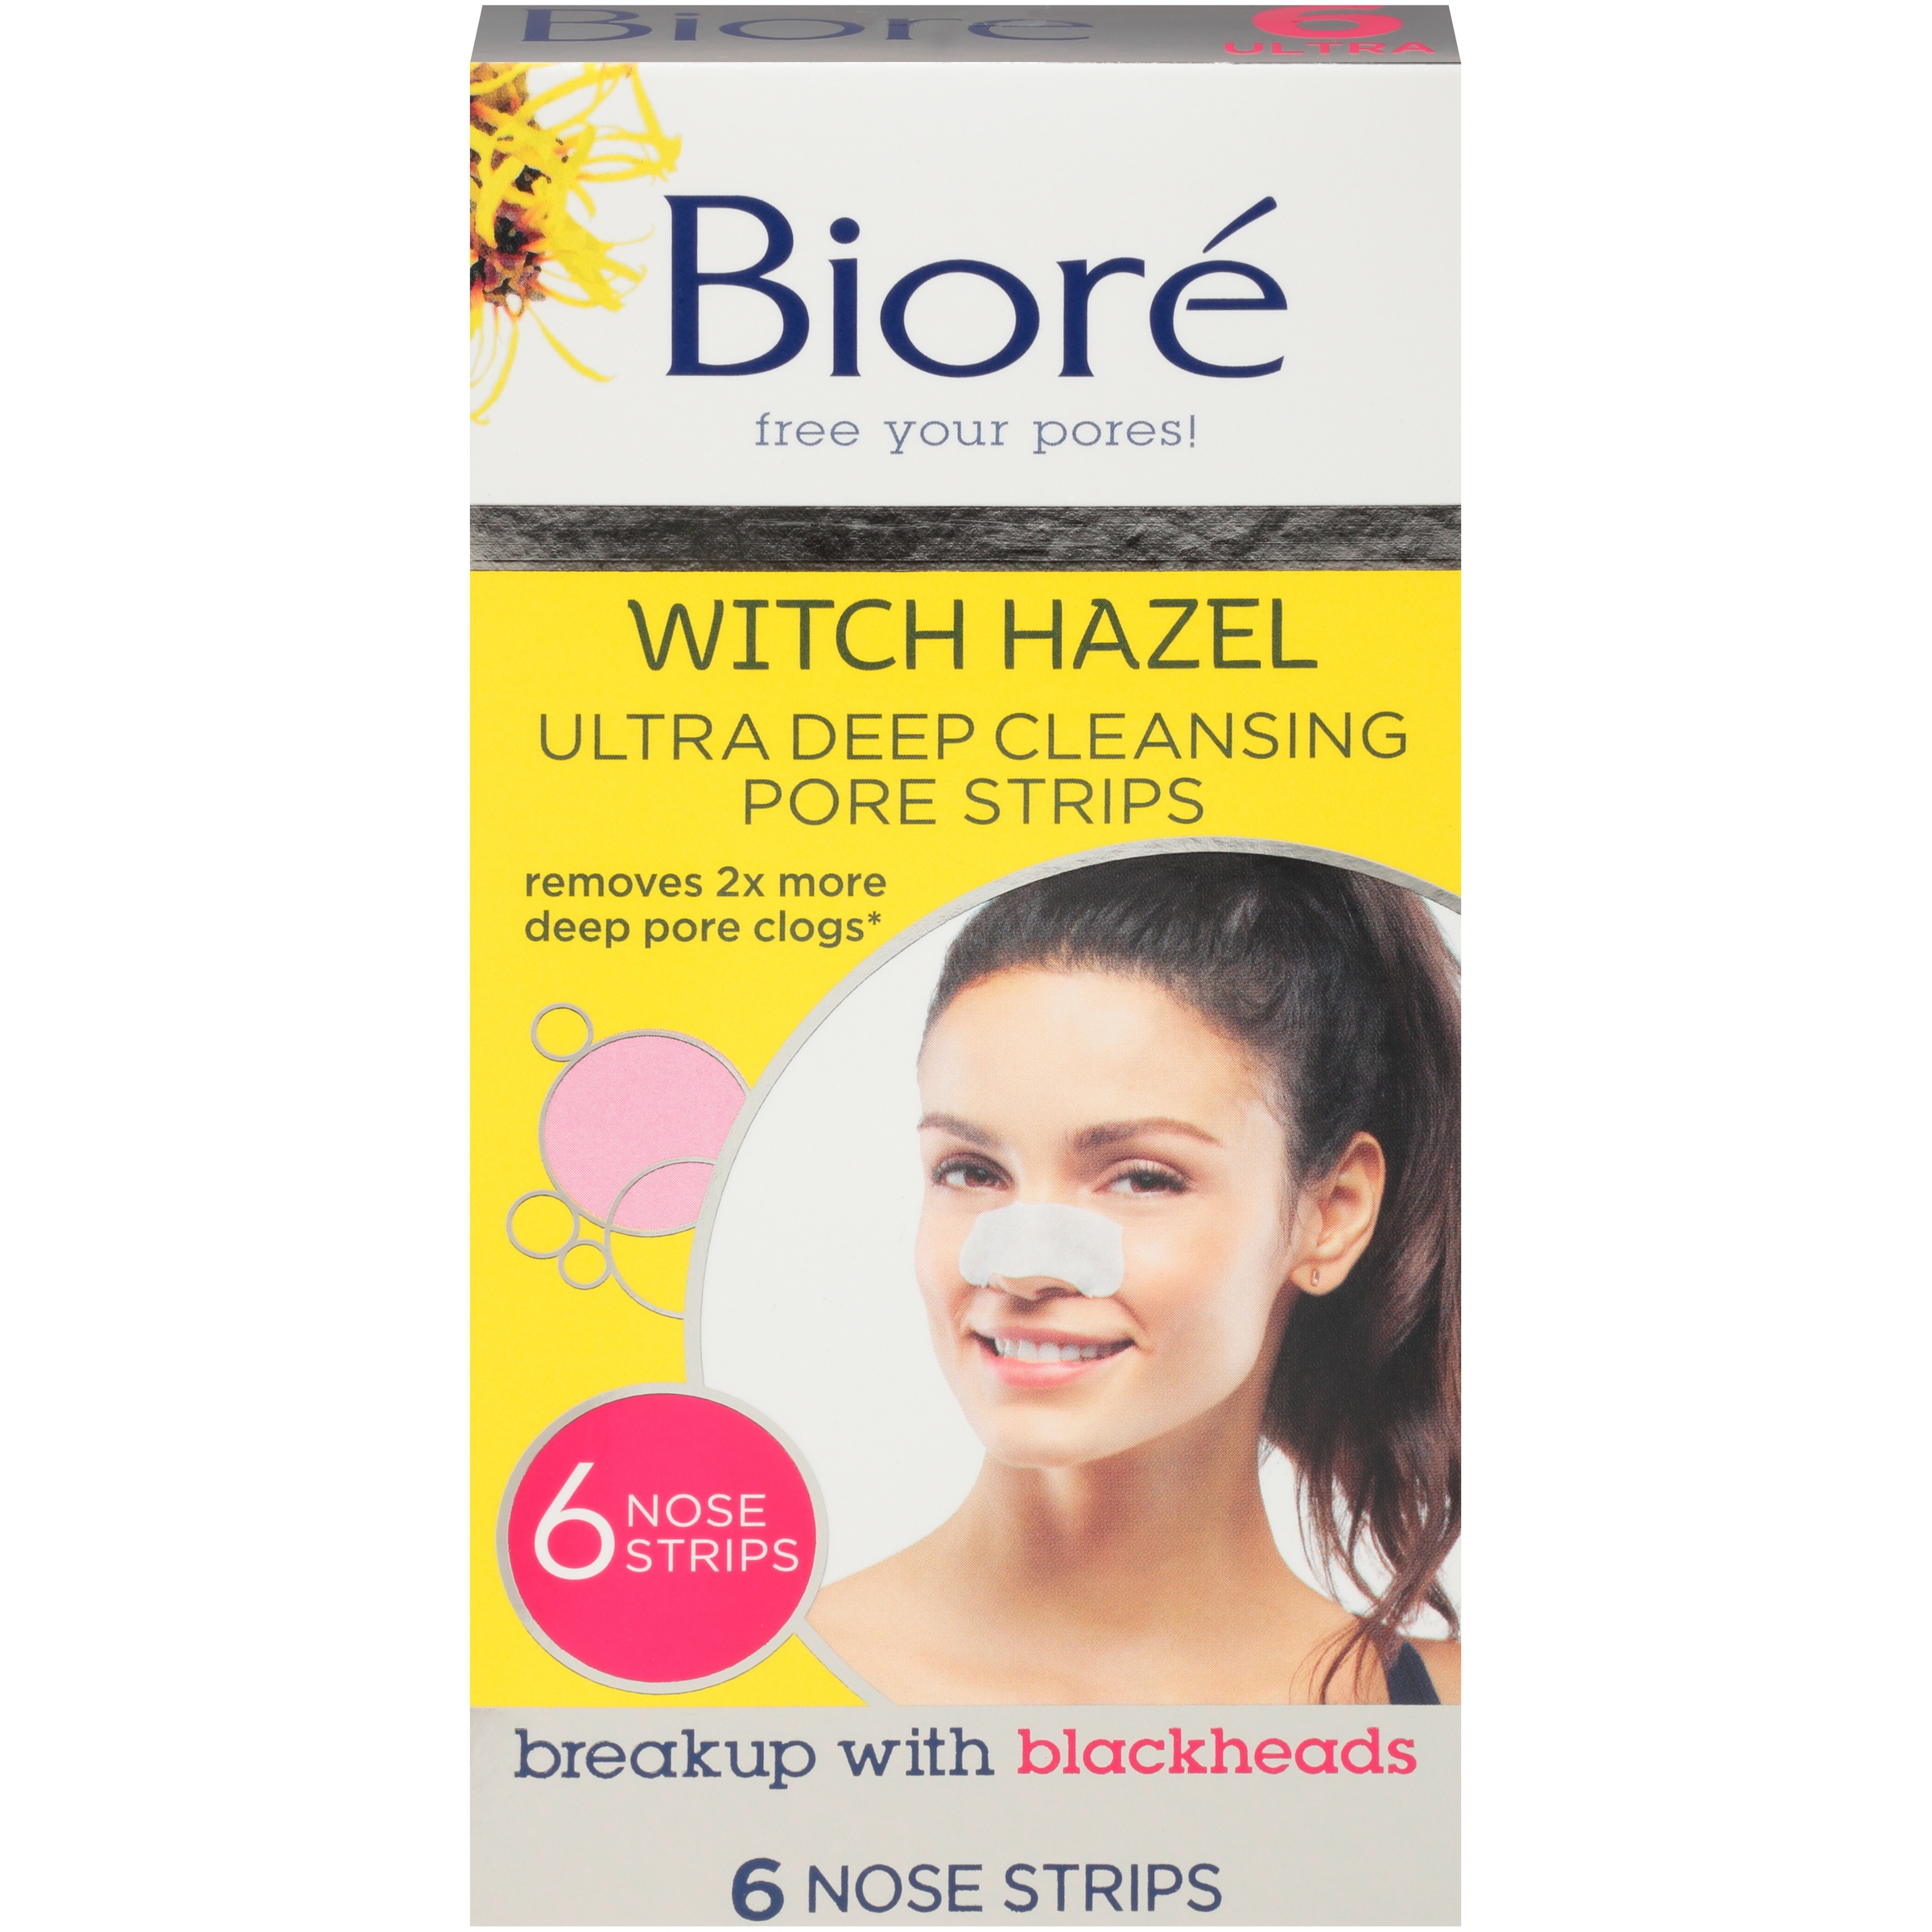 Biore Witch Hazel ULTRA Deep Cleansing Pore Strips - 6 ct Nose